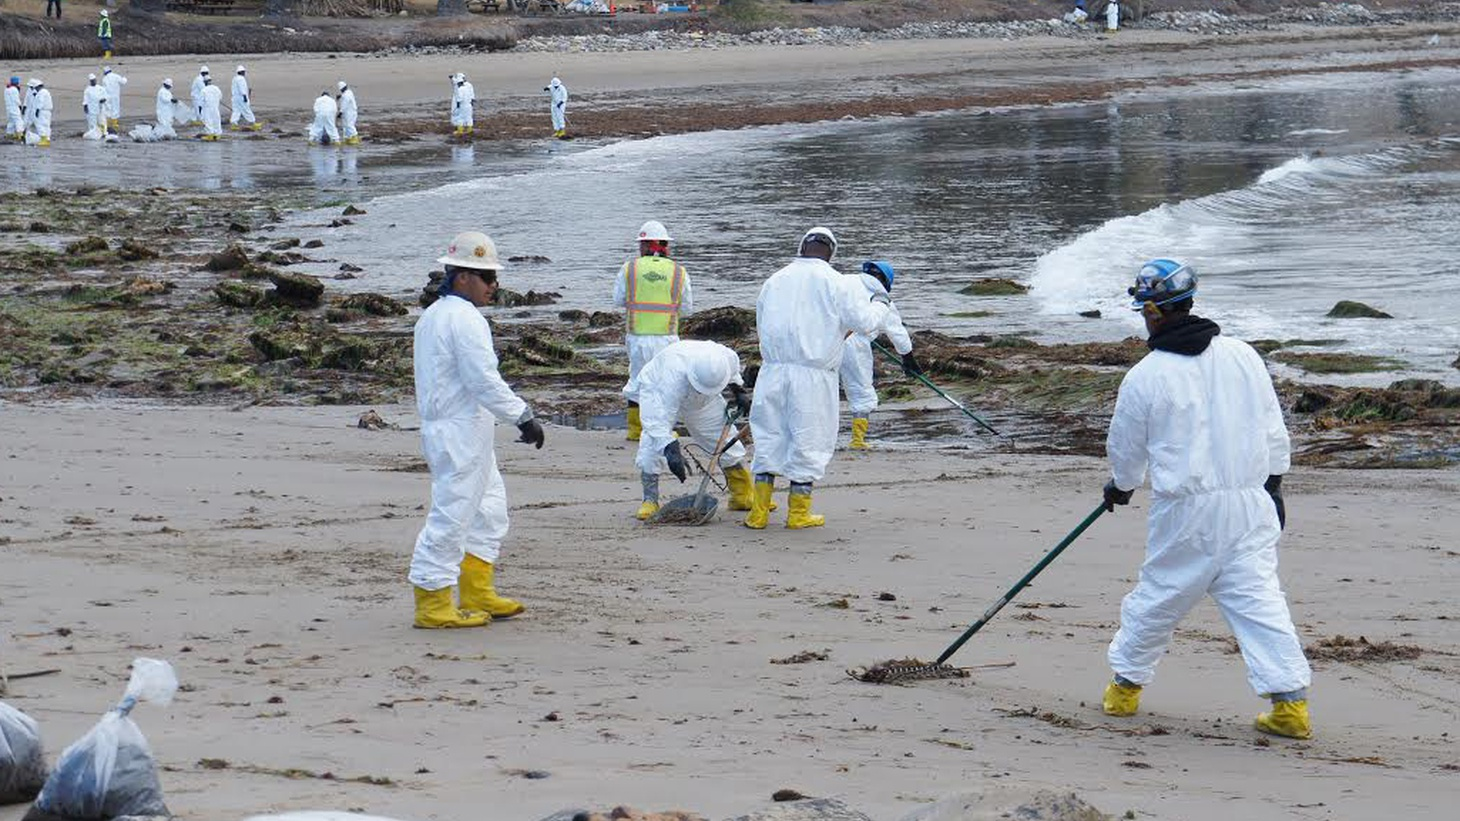 """One official calls this week's oil spill """"a worst-case scenario nightmare"""" for Santa Barbara, which has been ground zero for environmentalism since the massive oil-derrick blowout of 1969. The US Coast Guard is trying to manage public expectations for cleaning up, but KCRW'sSaul Gonzalez has found that activists are impatient."""